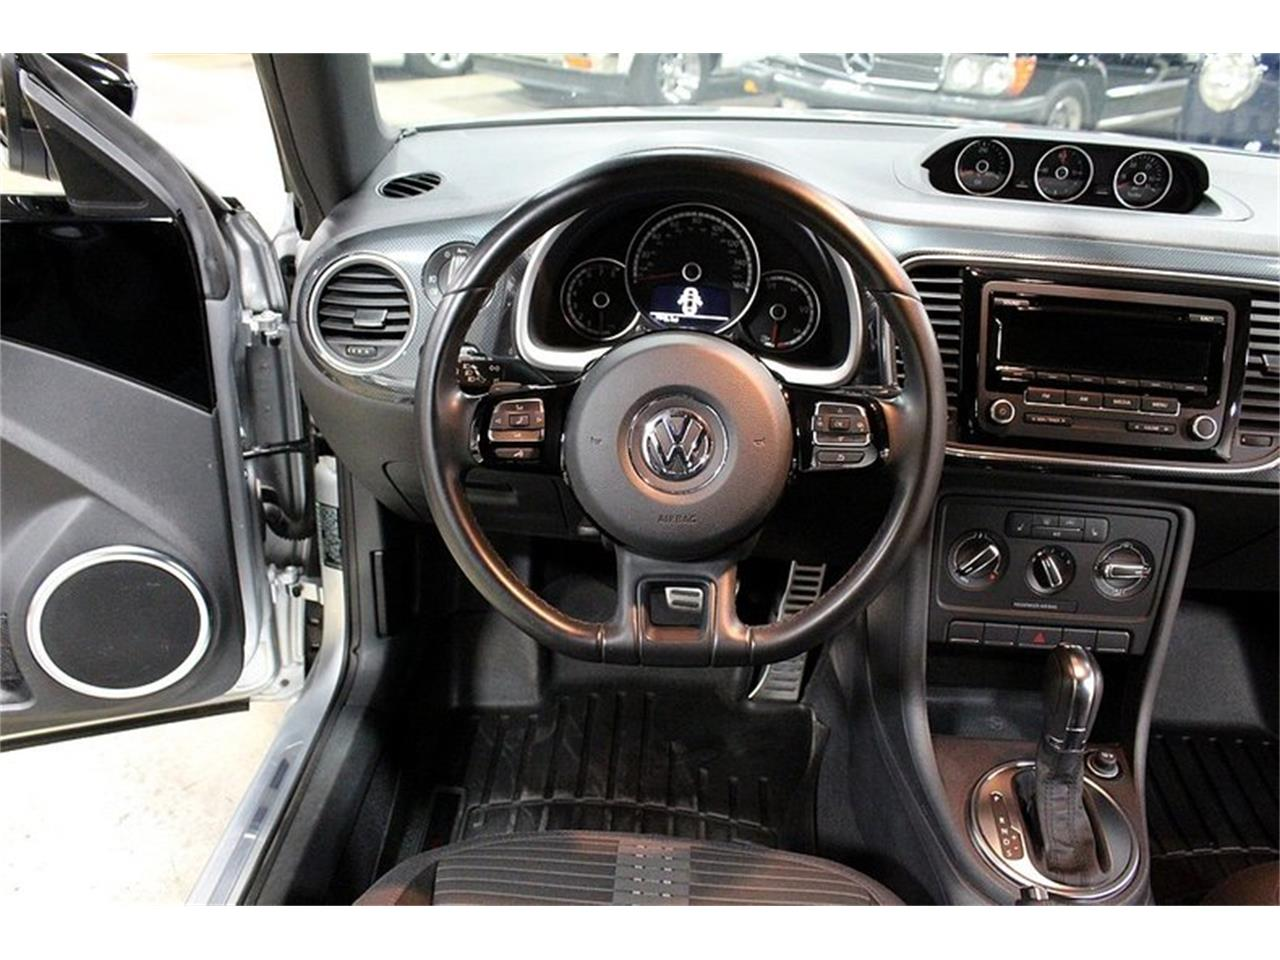 Large Picture of 2014 Volkswagen Beetle - $15,900.00 - OIFD